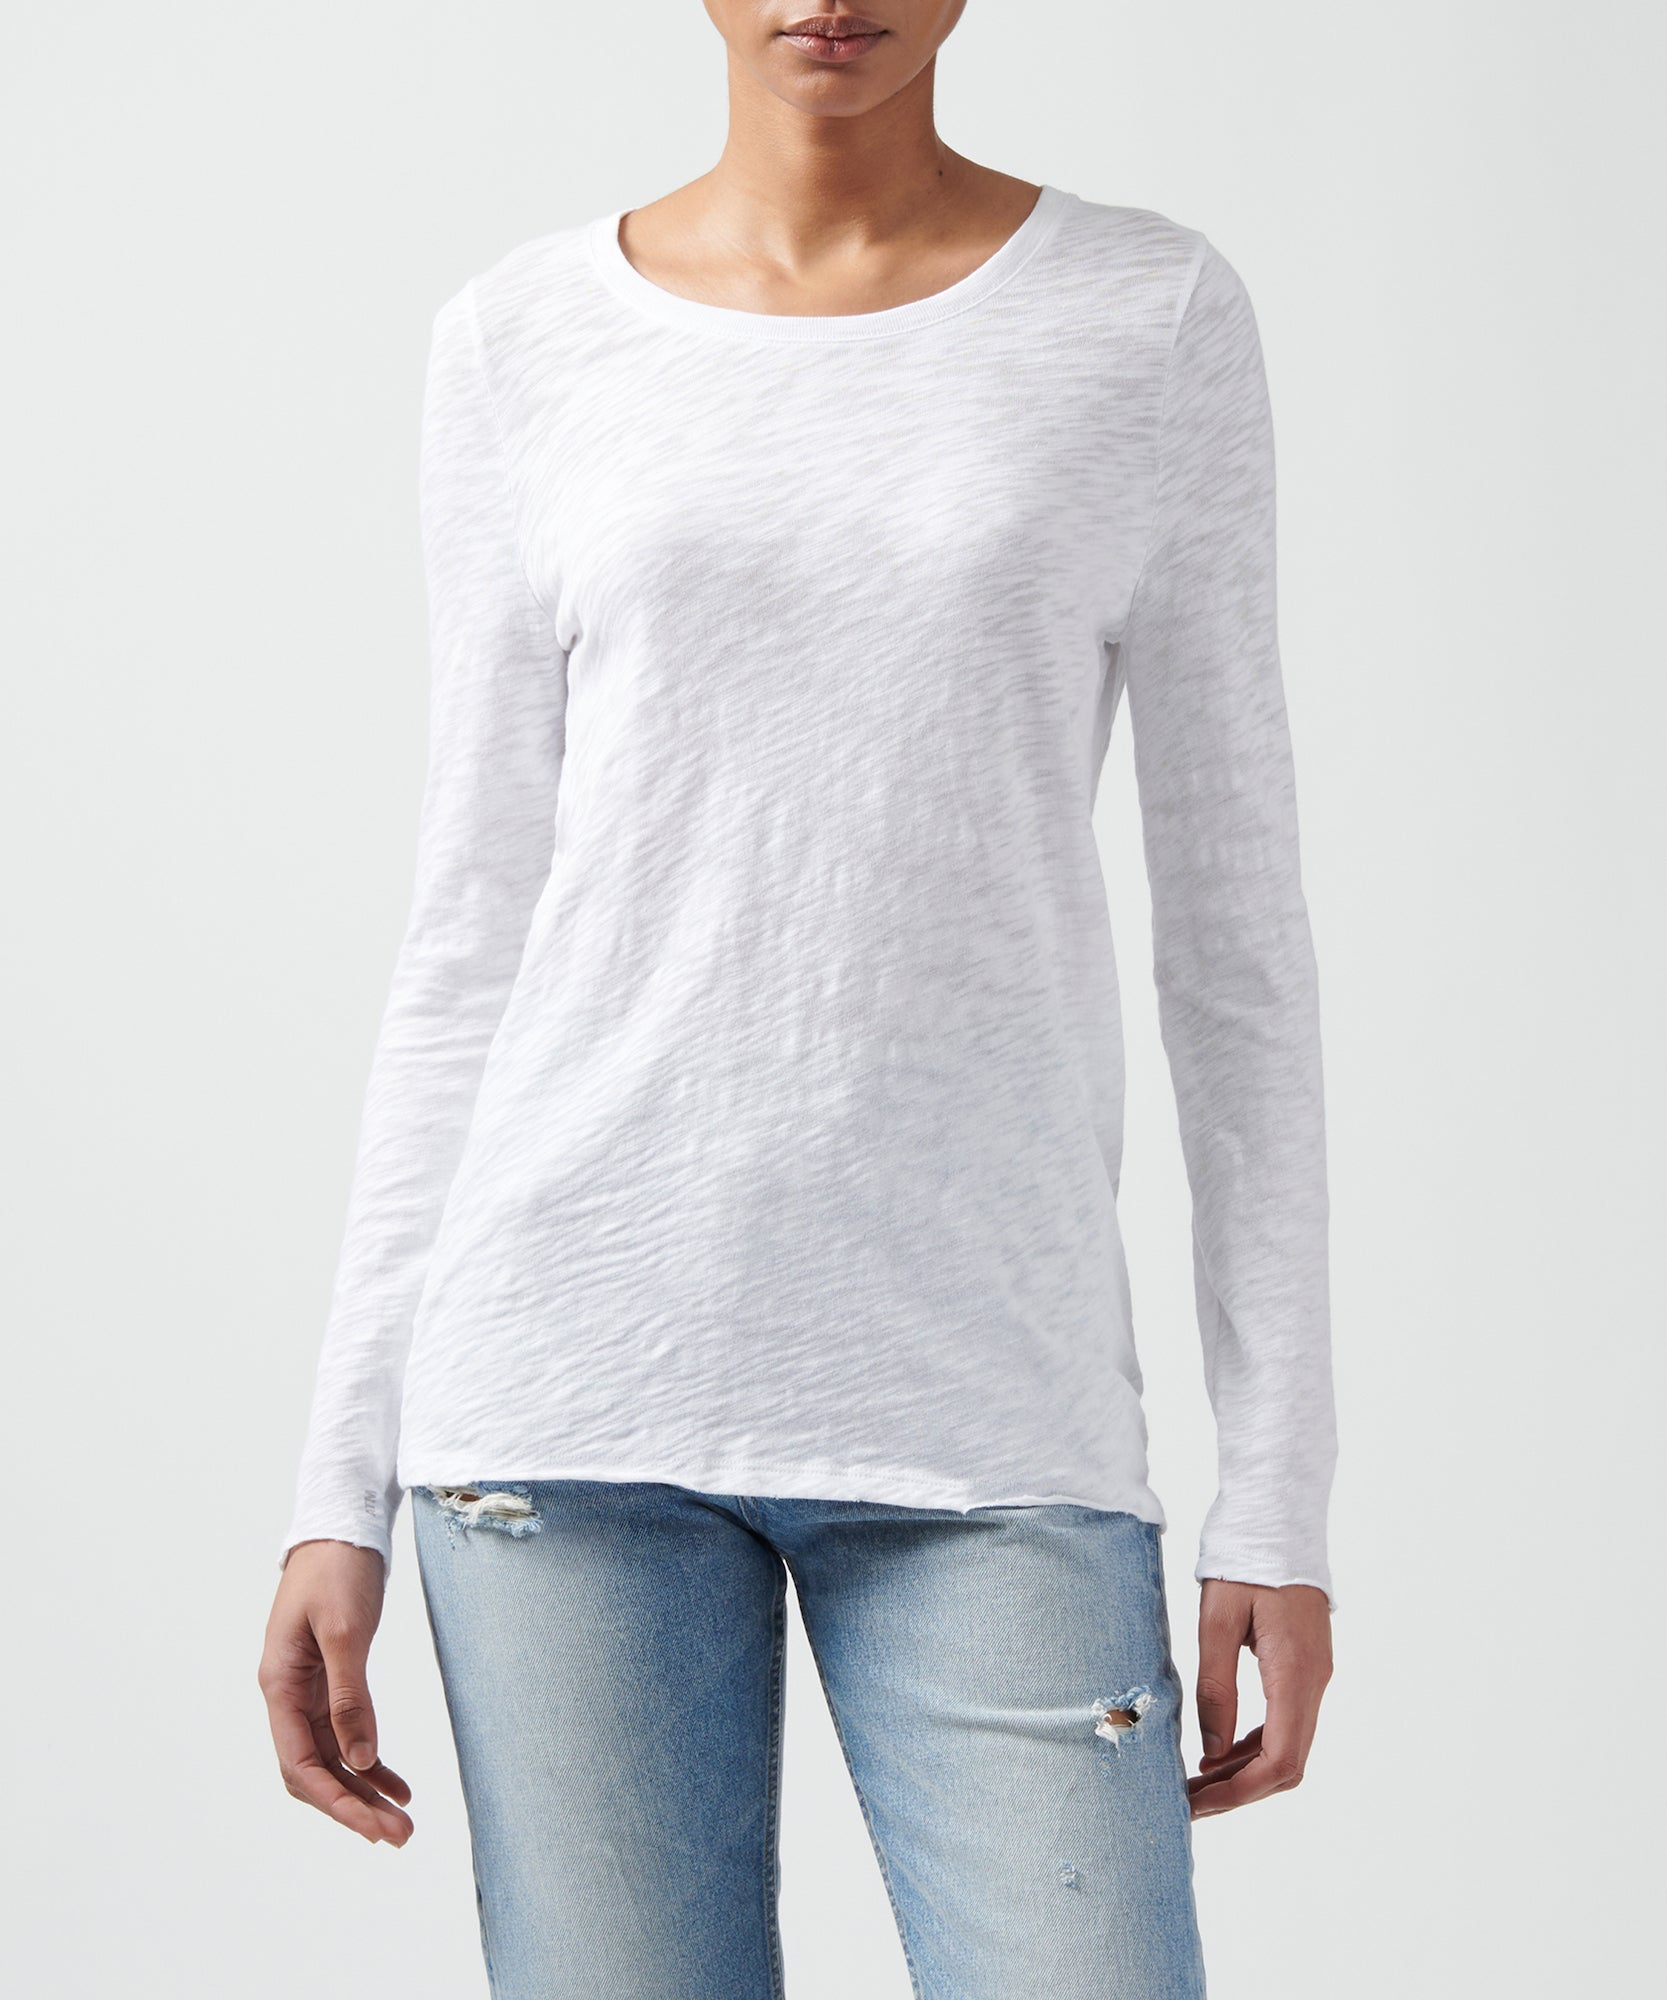 White Slub Jersey Destroyed Wash Tee - Men's Cotton Long Sleeve Tee by ATM Anthony Thomas Melillo